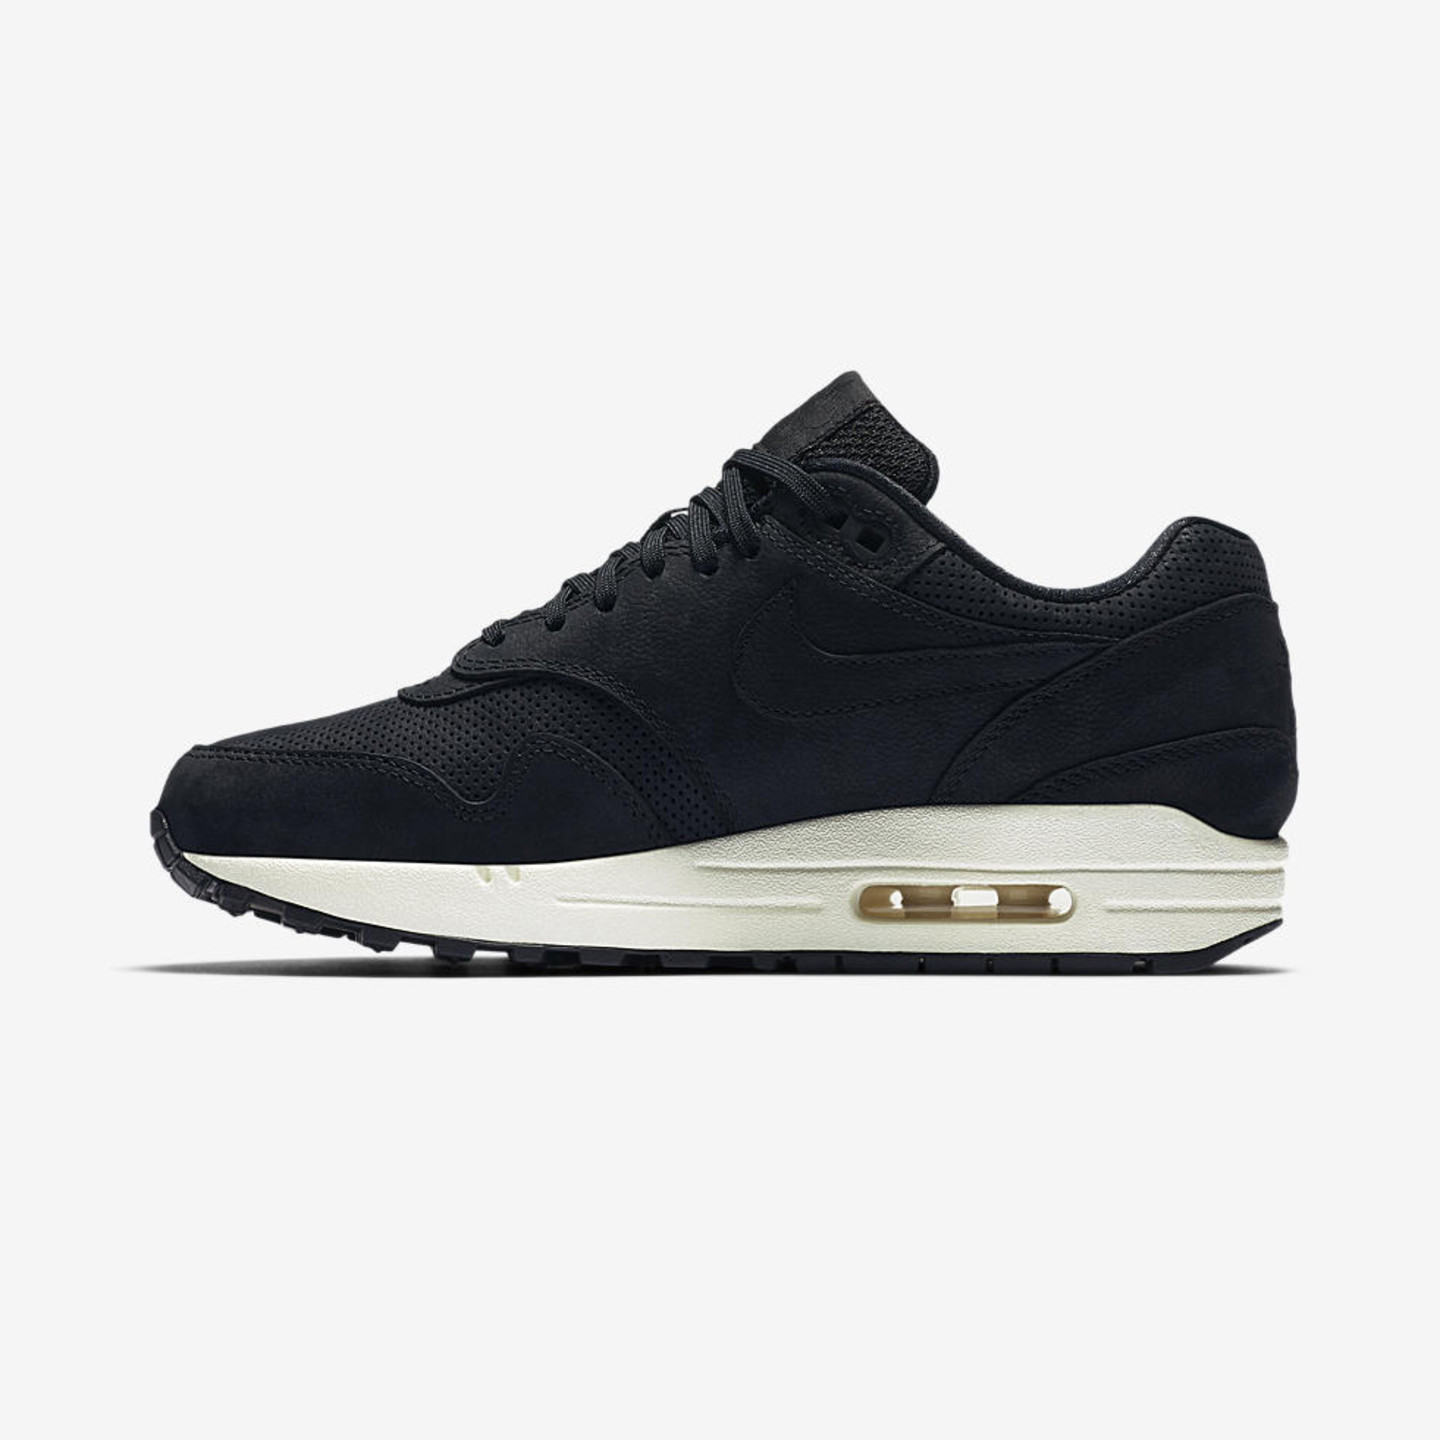 Nike Wmns Air Max 1 Pinnacle Black / Sail 839608-005